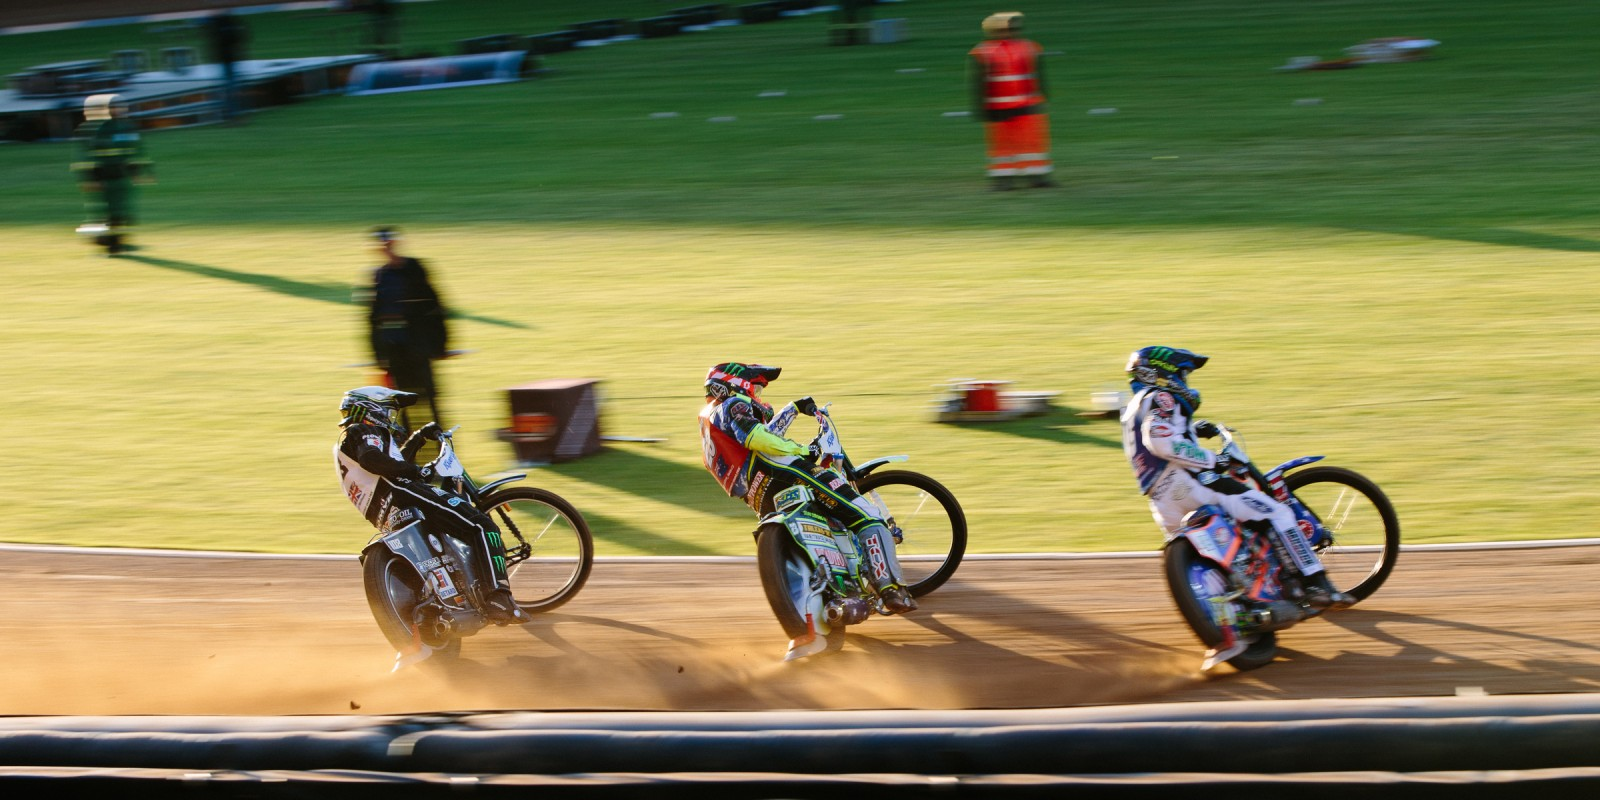 Images from the Danish Speedway GP in Horsens, June 2016